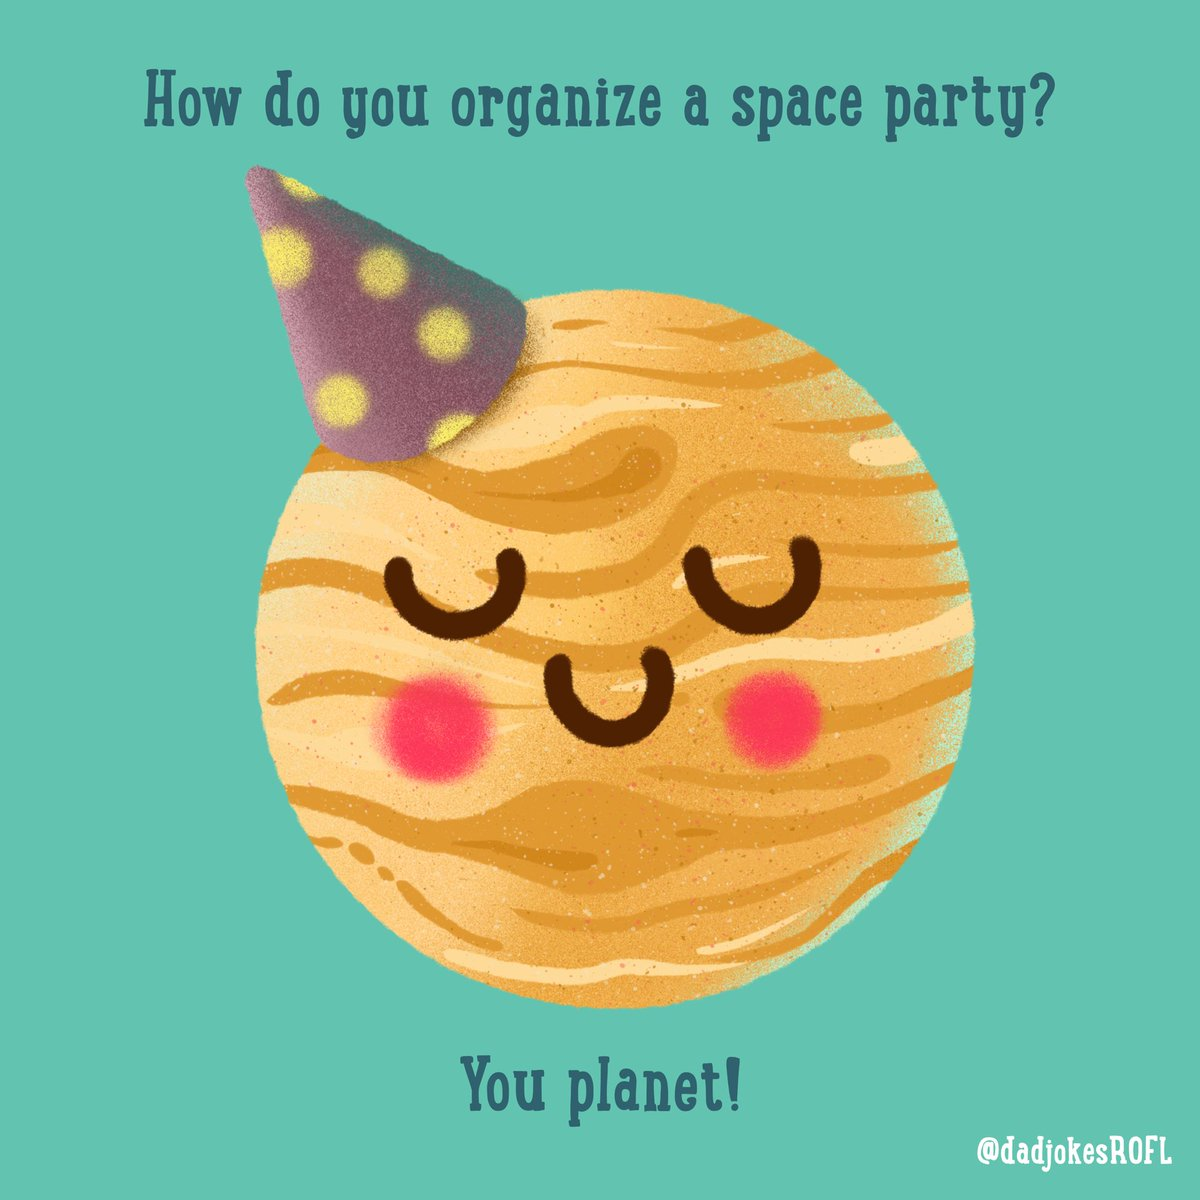 Dad Jokes On Twitter How Do You Organize A Space Party You